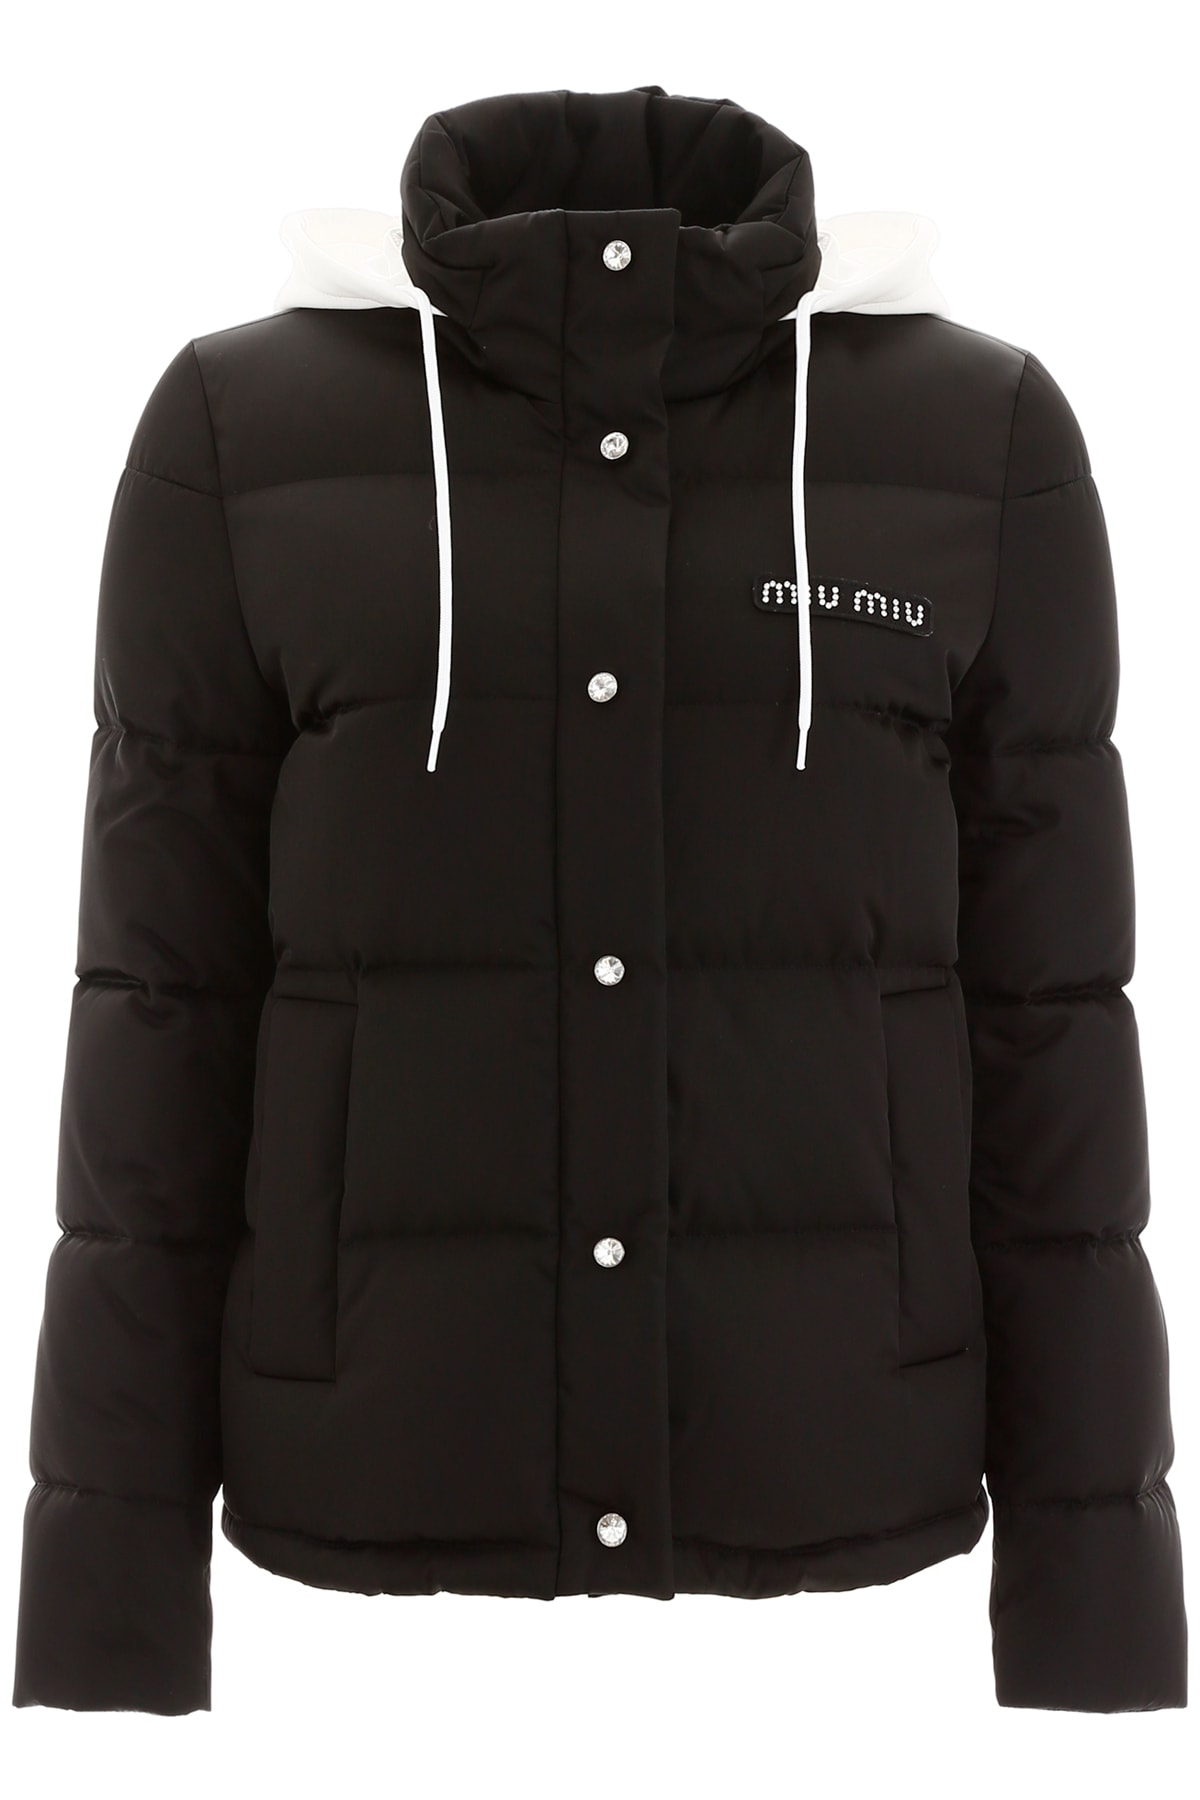 Miu Miu Logo Puffer Jacket With Crystals